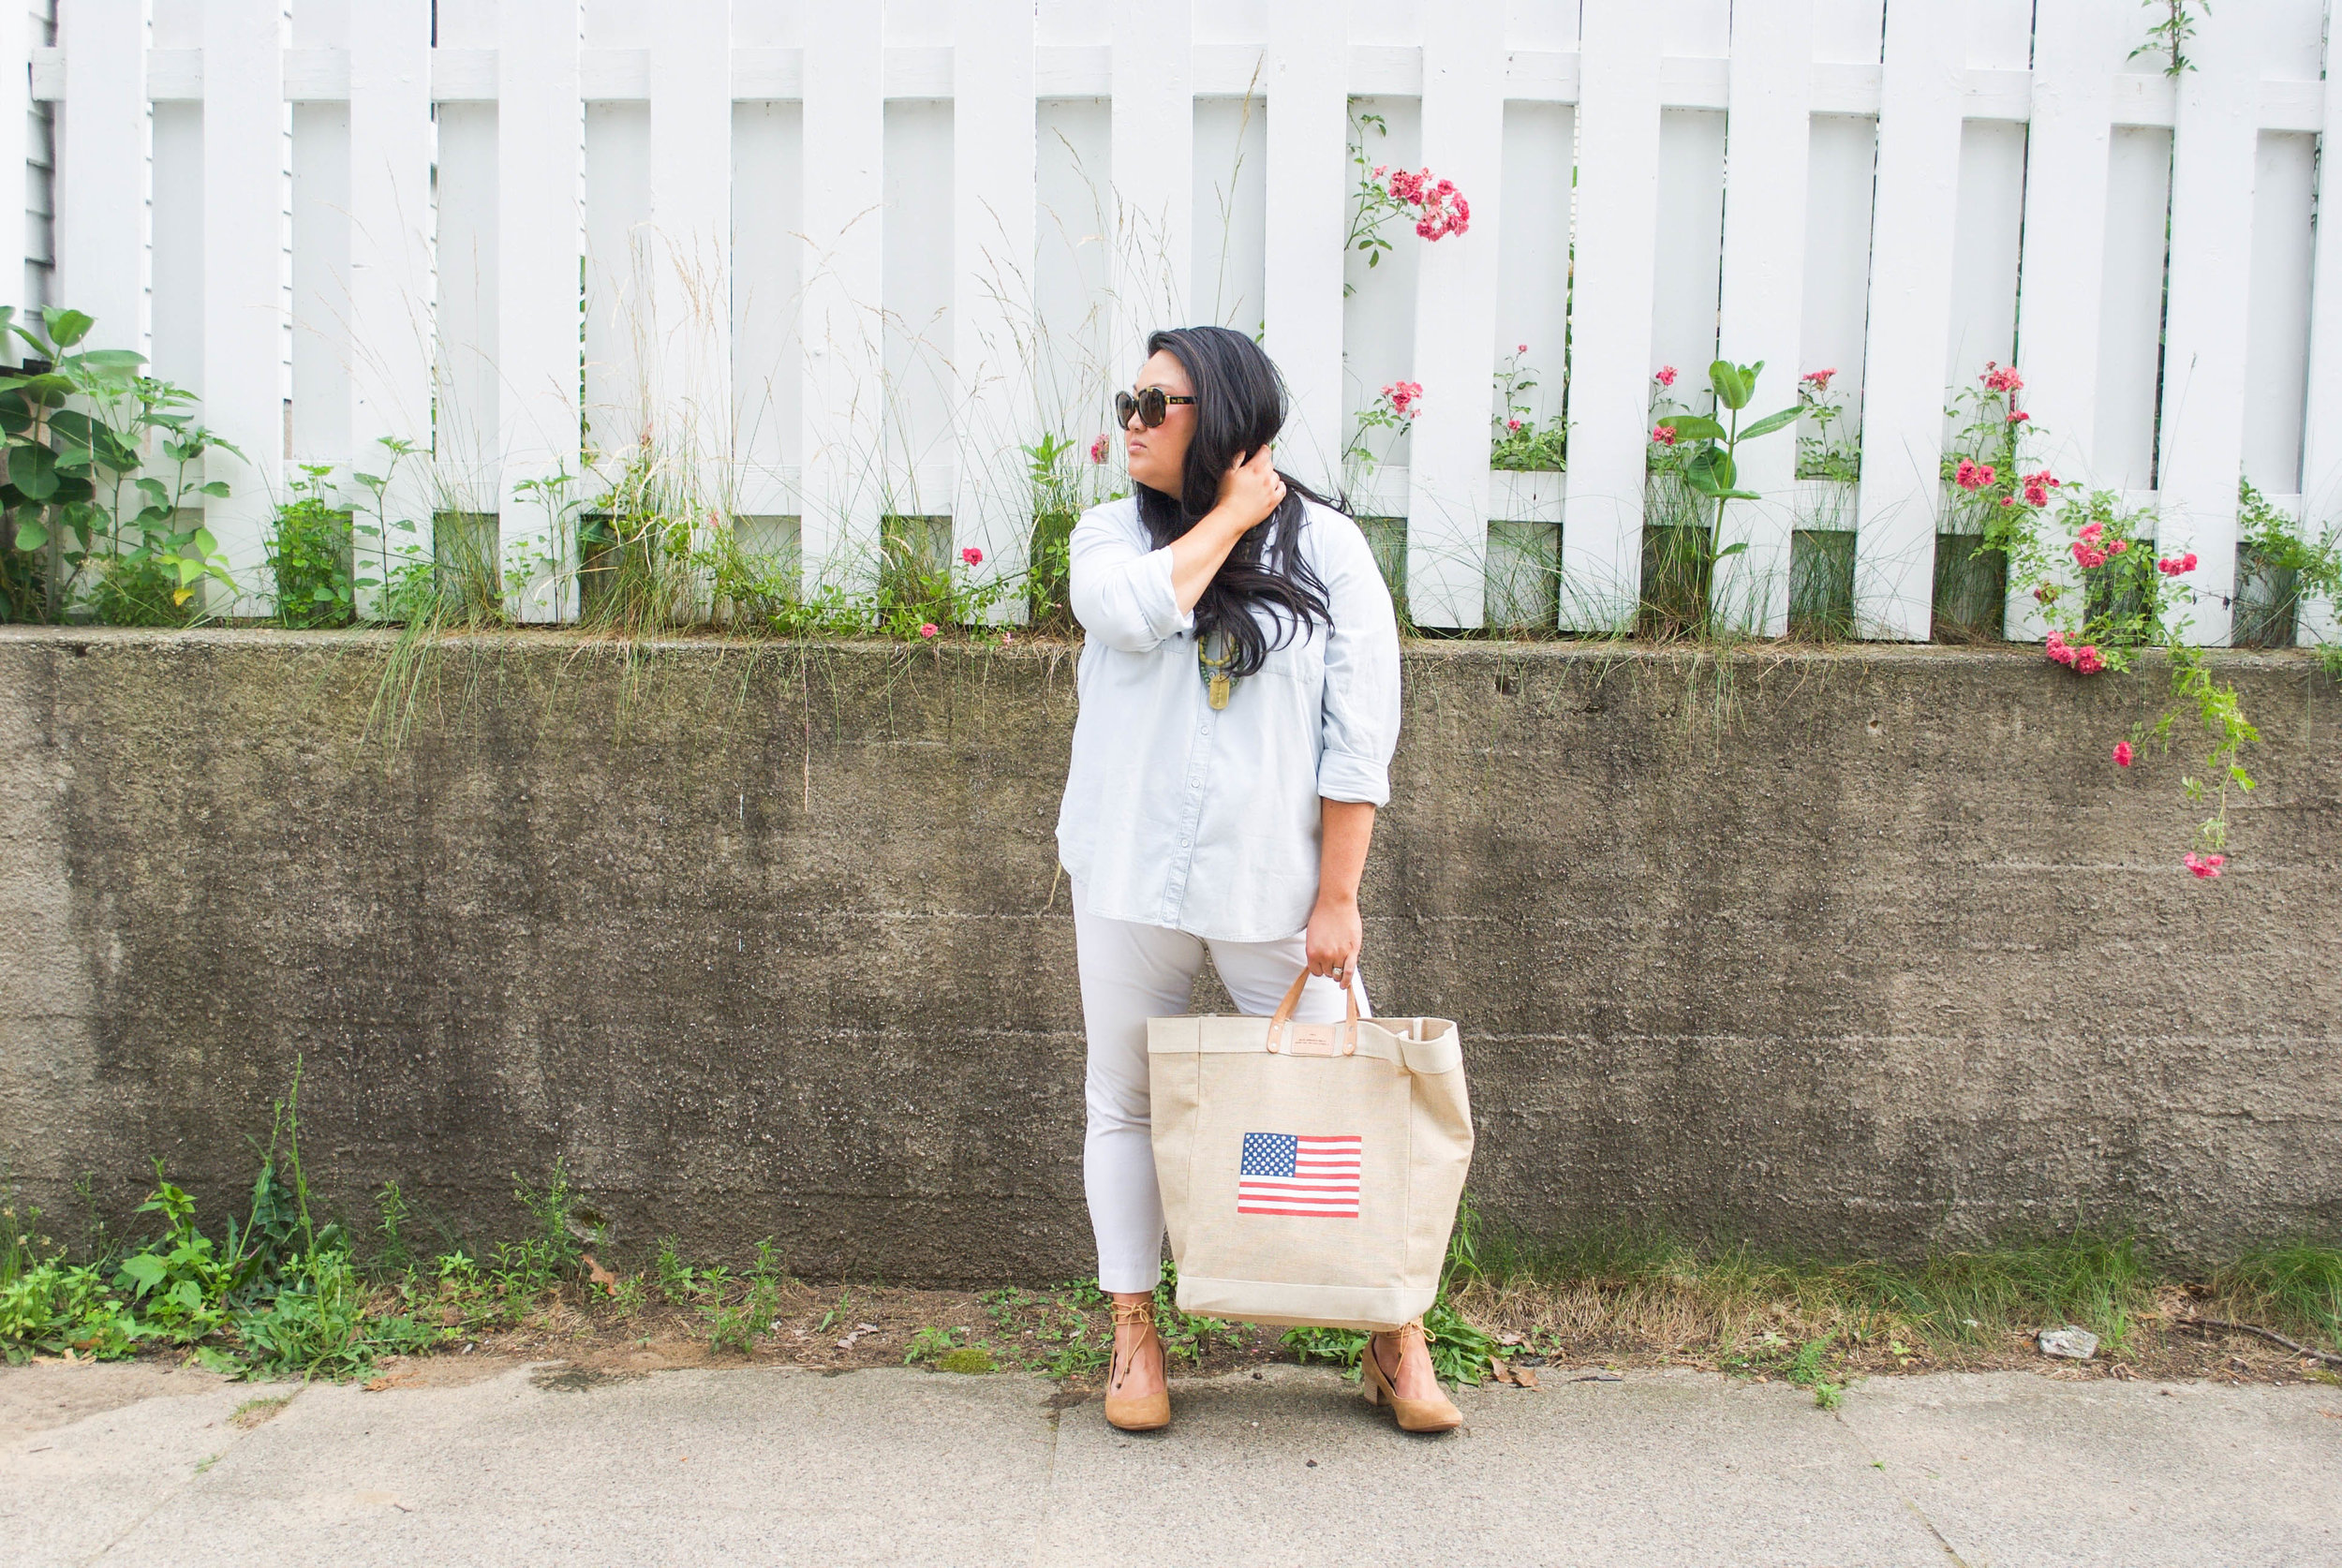 sincerely-ashley-hush-puppies-shoes-outfit